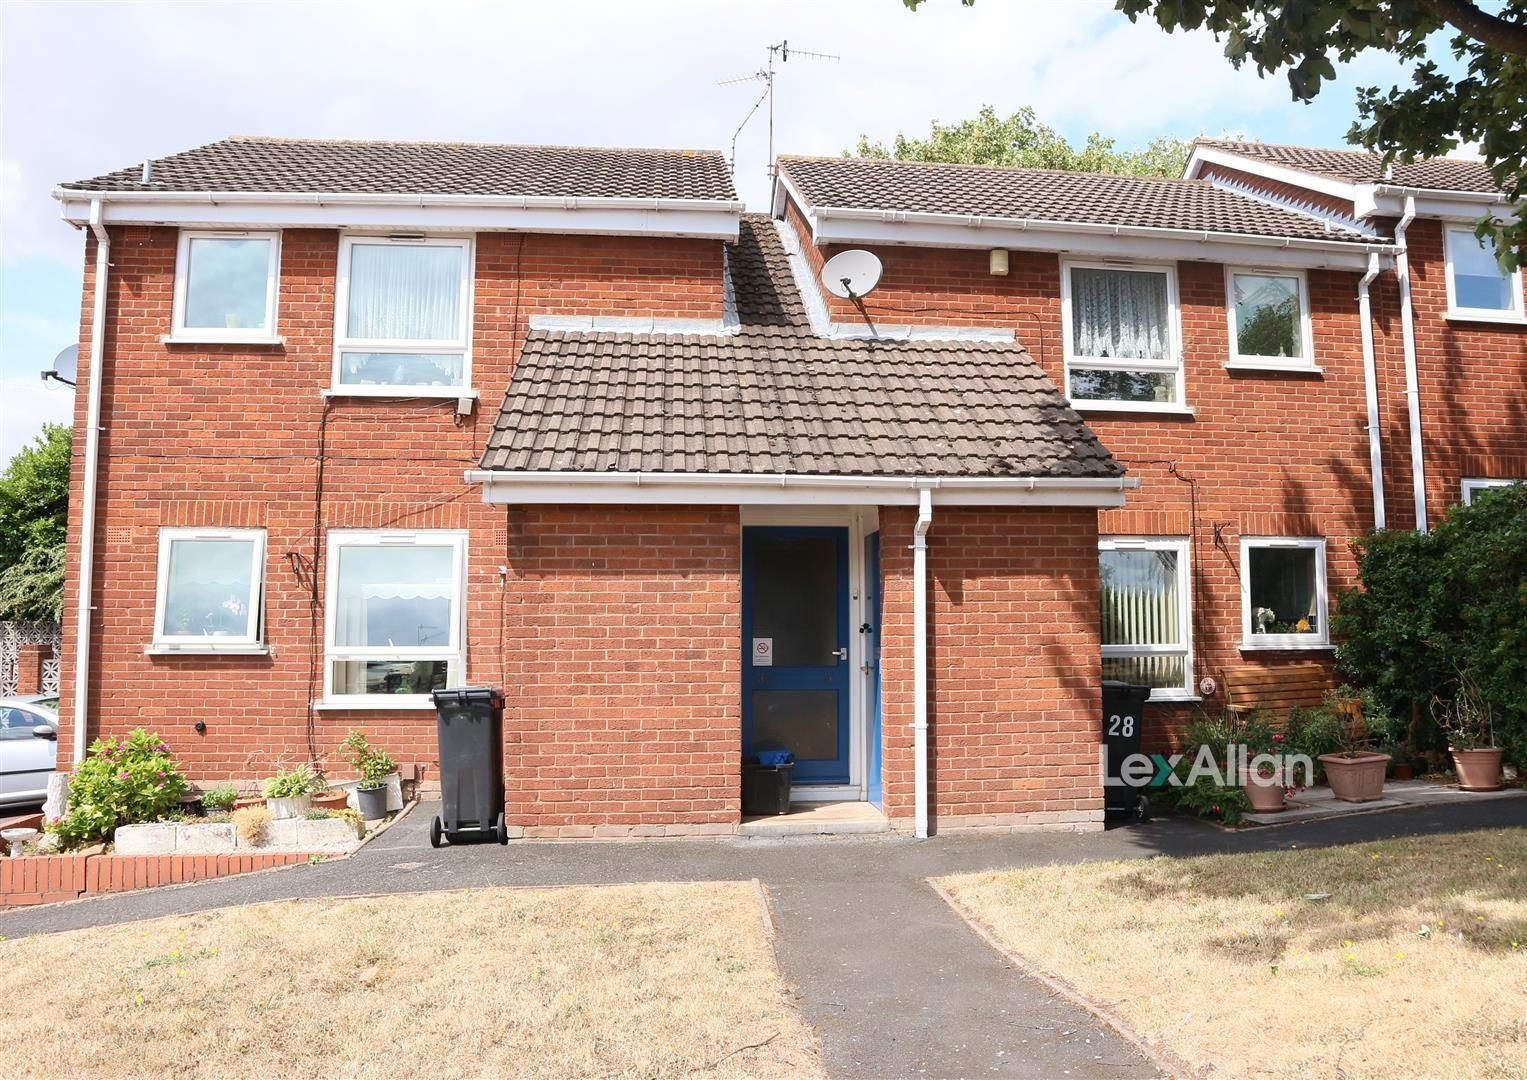 1 bed flat for sale, DY5